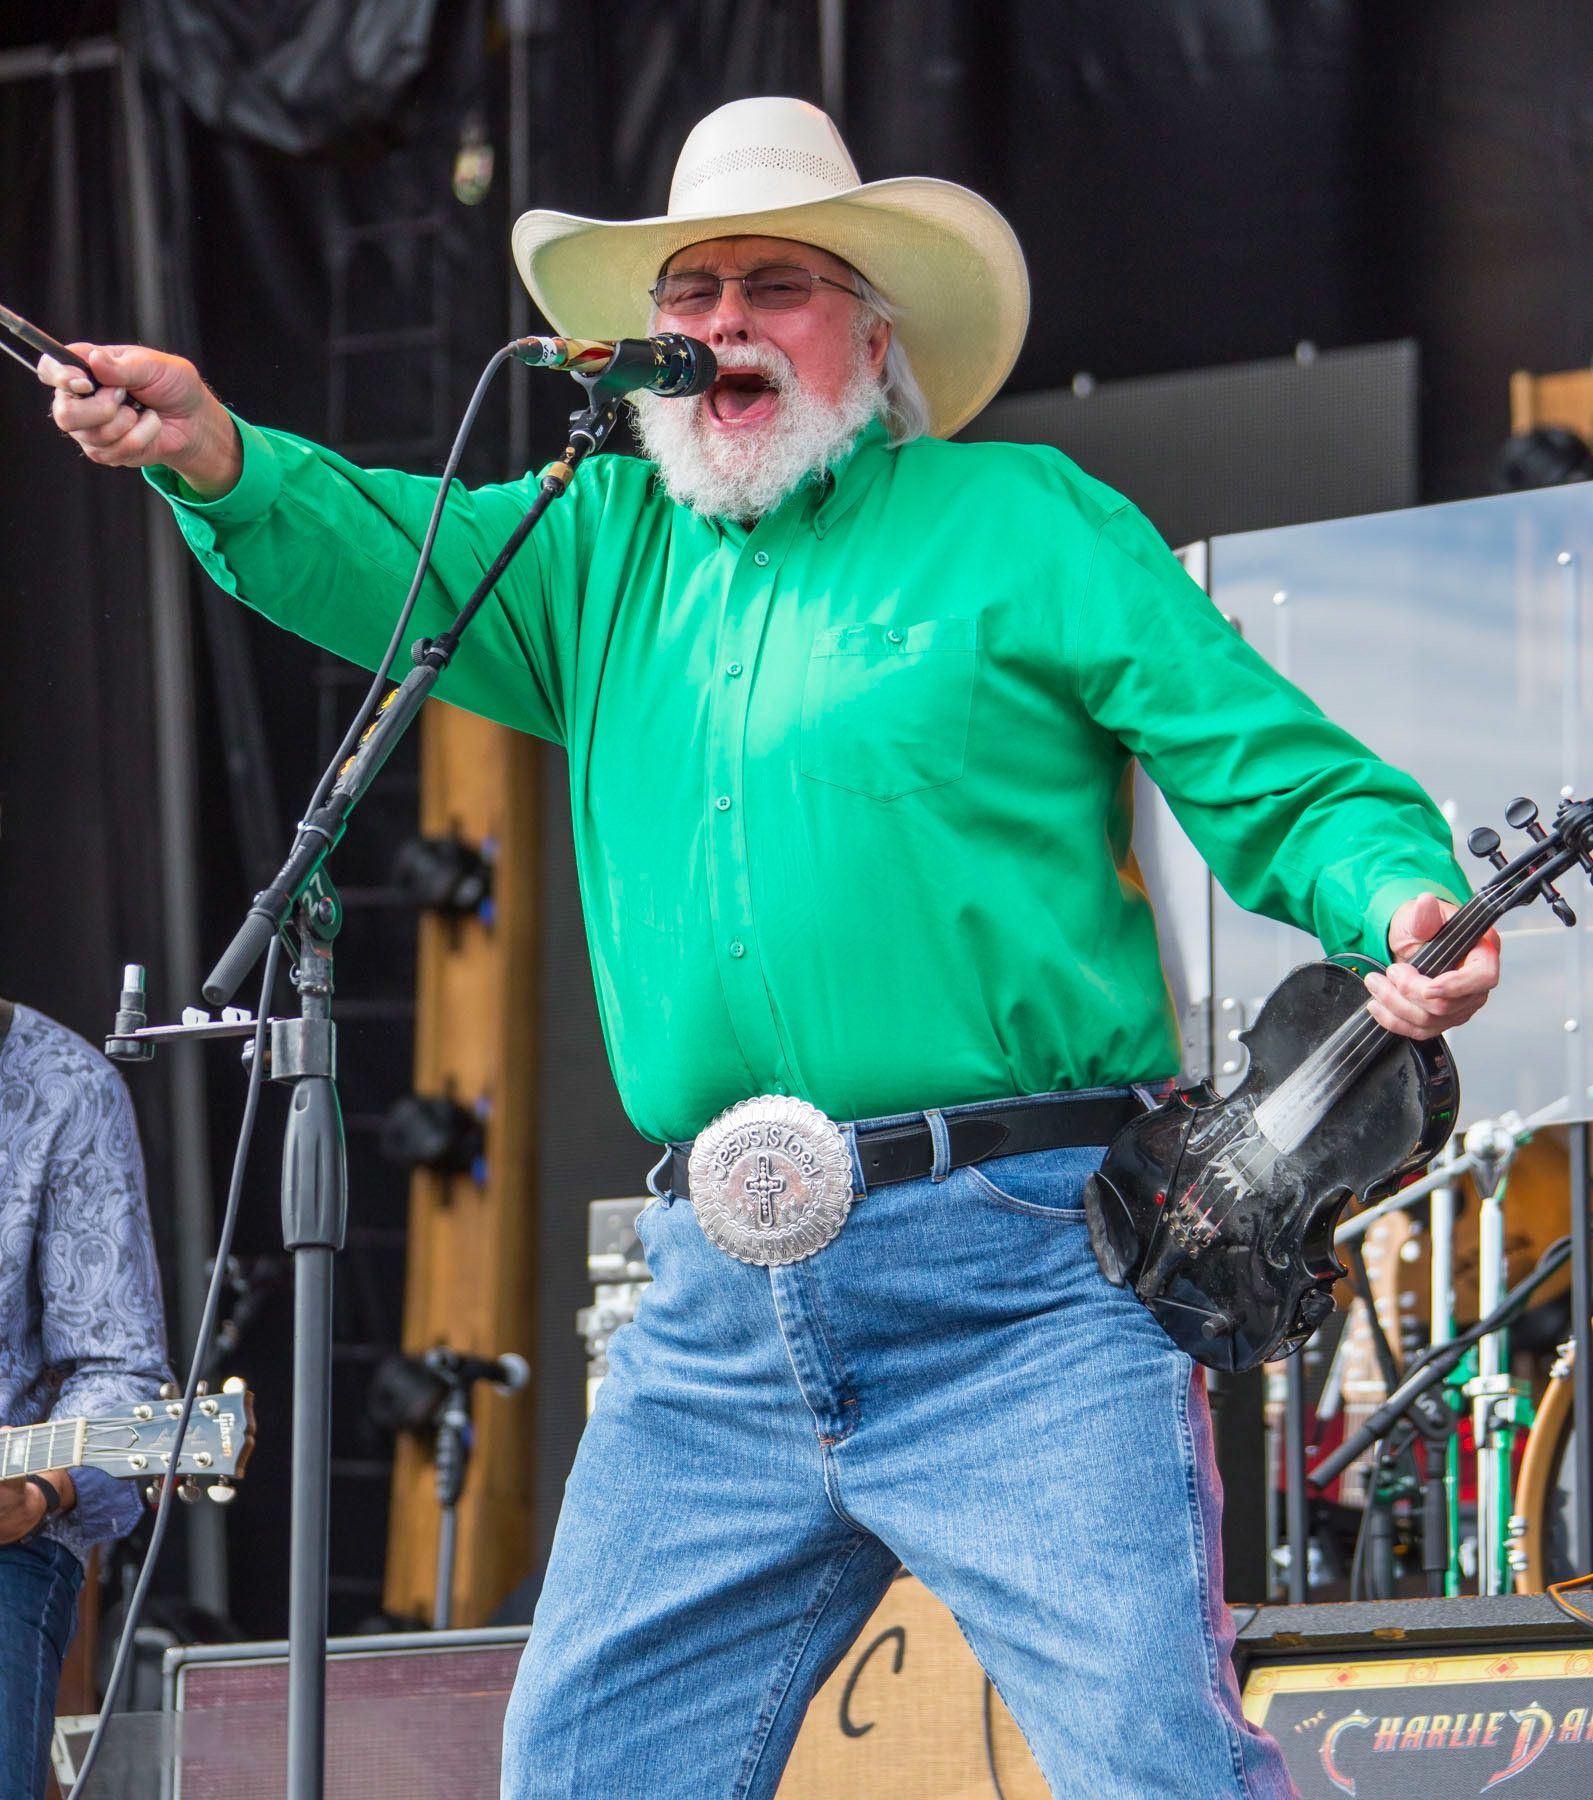 BROOKLYN, MI - JULY 22:  Charlie Daniels performs during day 2 of Faster Horses Festival at Michigan International Speedway on July 22, 2017 in Brooklyn, Michigan.  (Photo by Scott Legato/Getty Images)